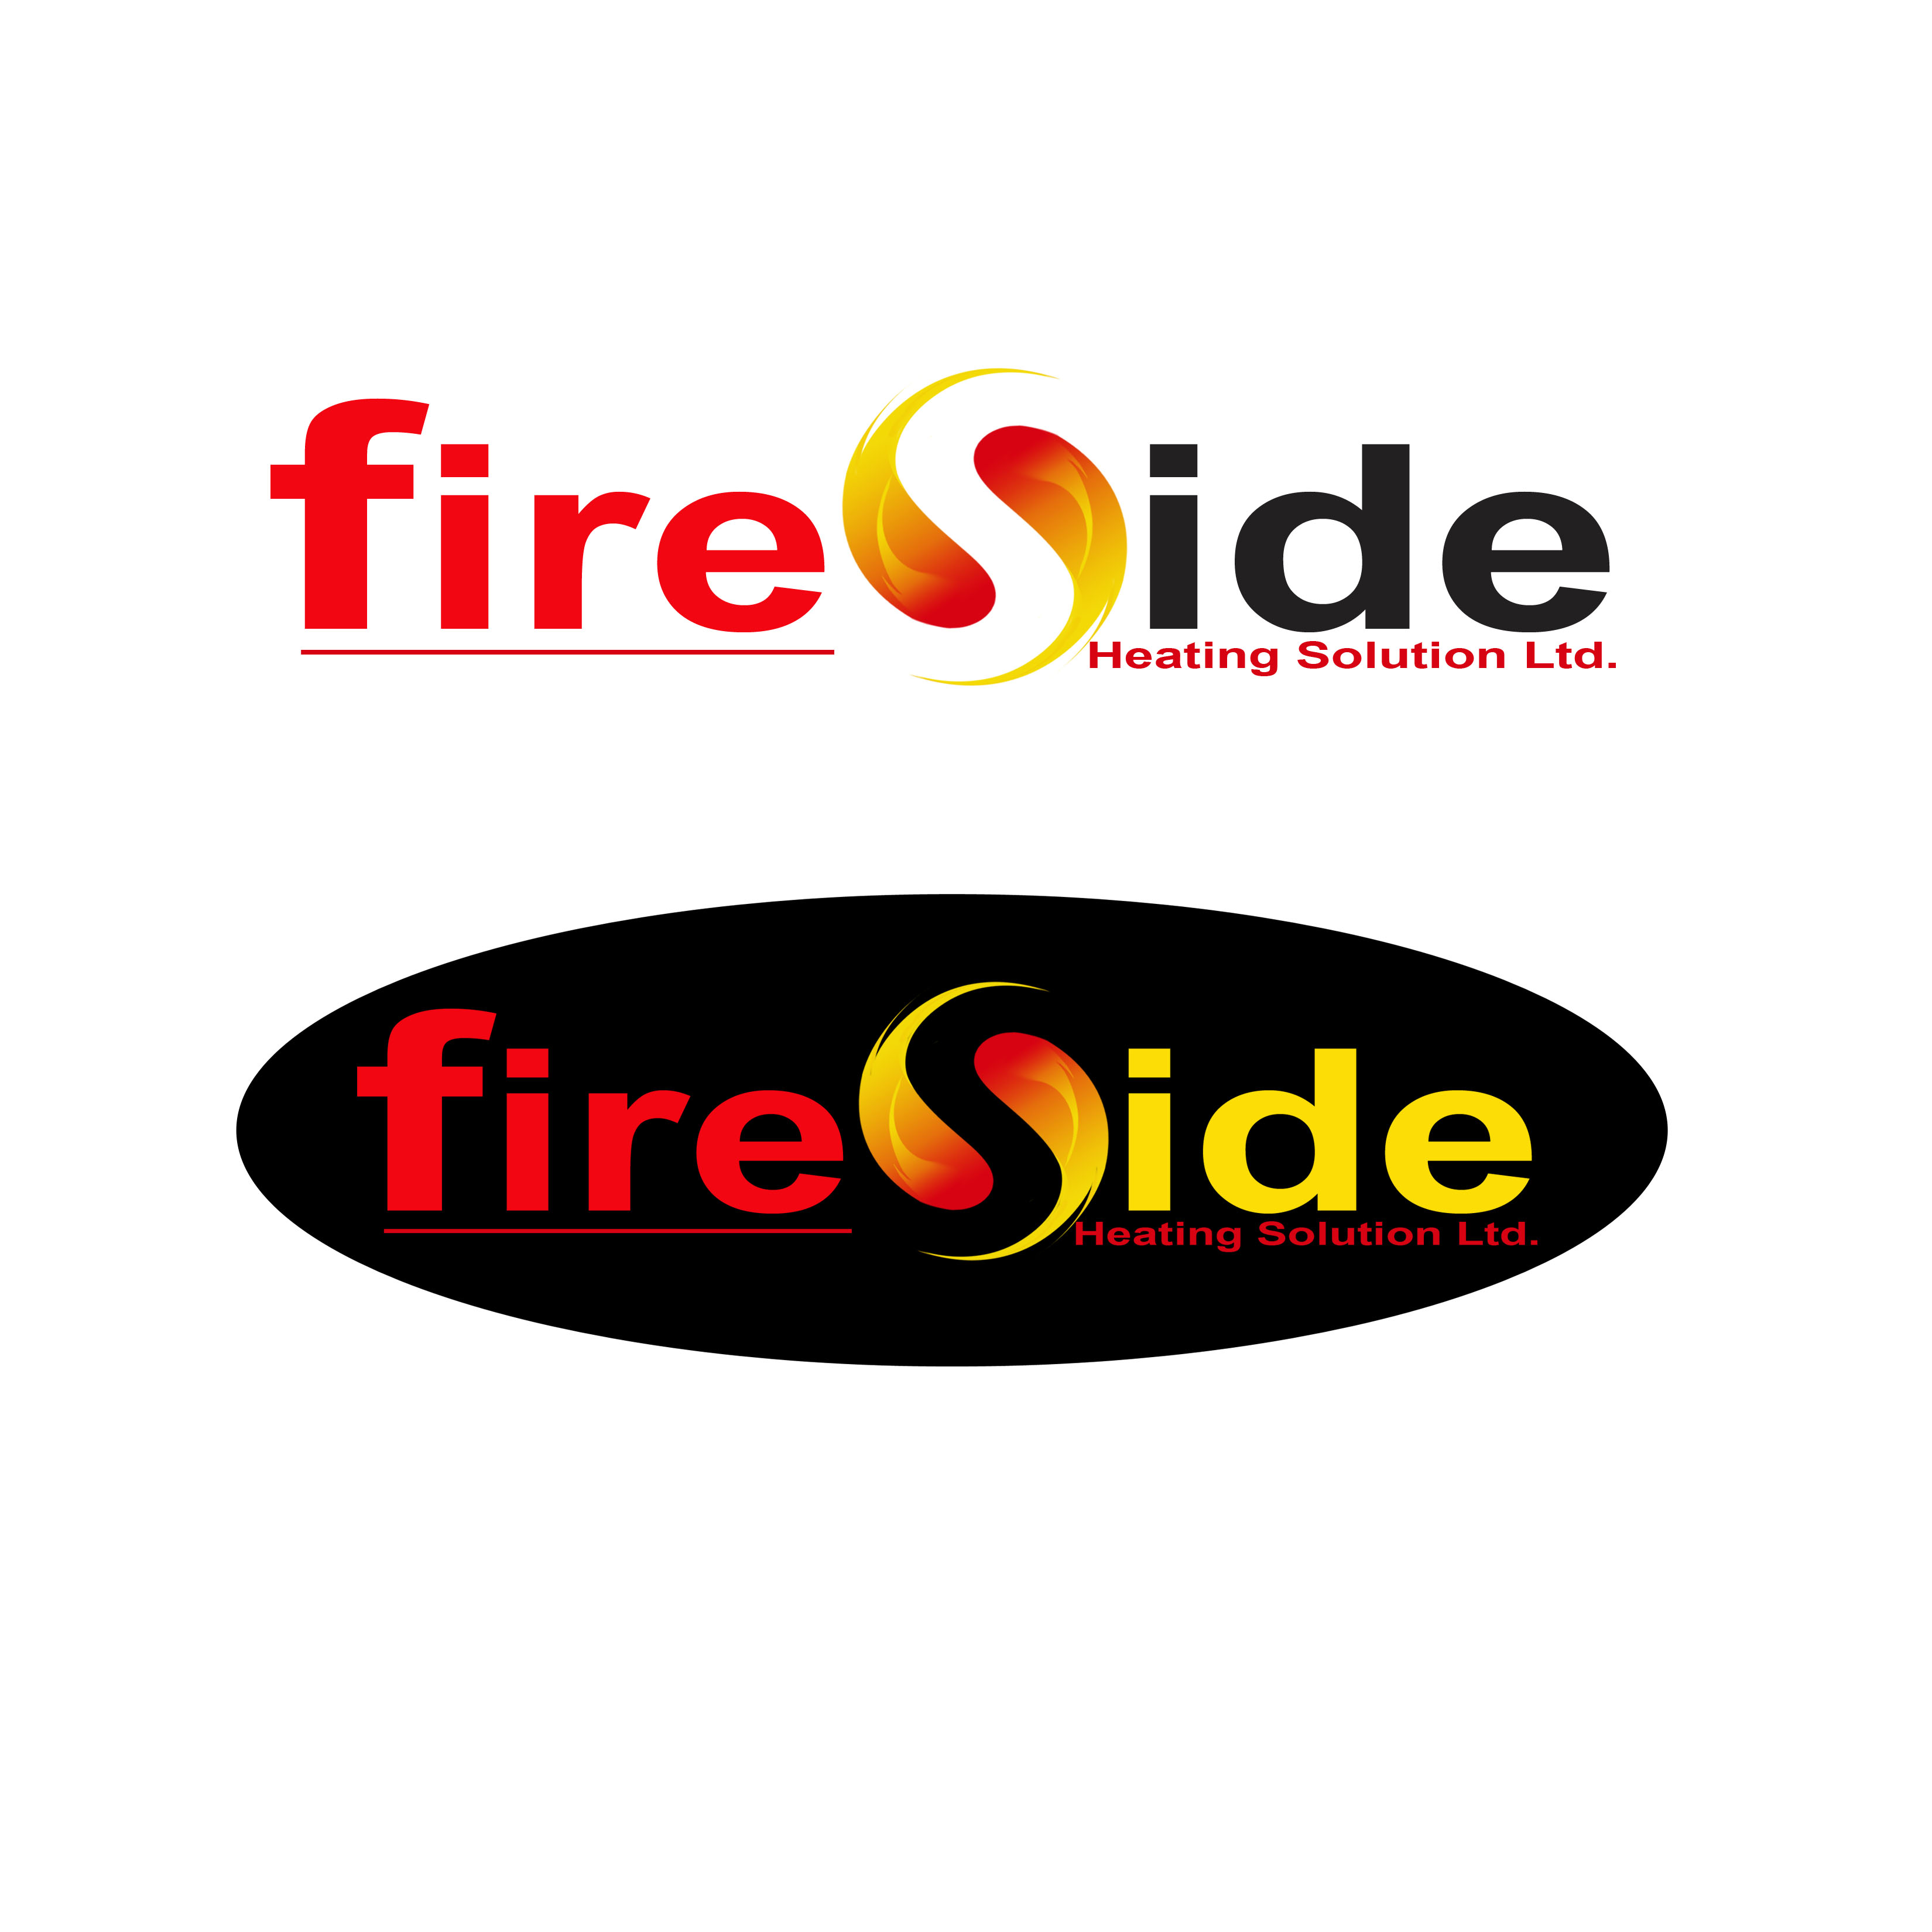 Logo Design by Allan Esclamado - Entry No. 174 in the Logo Design Contest Creative Logo Design for Fireside Heating Solutions Ltd..